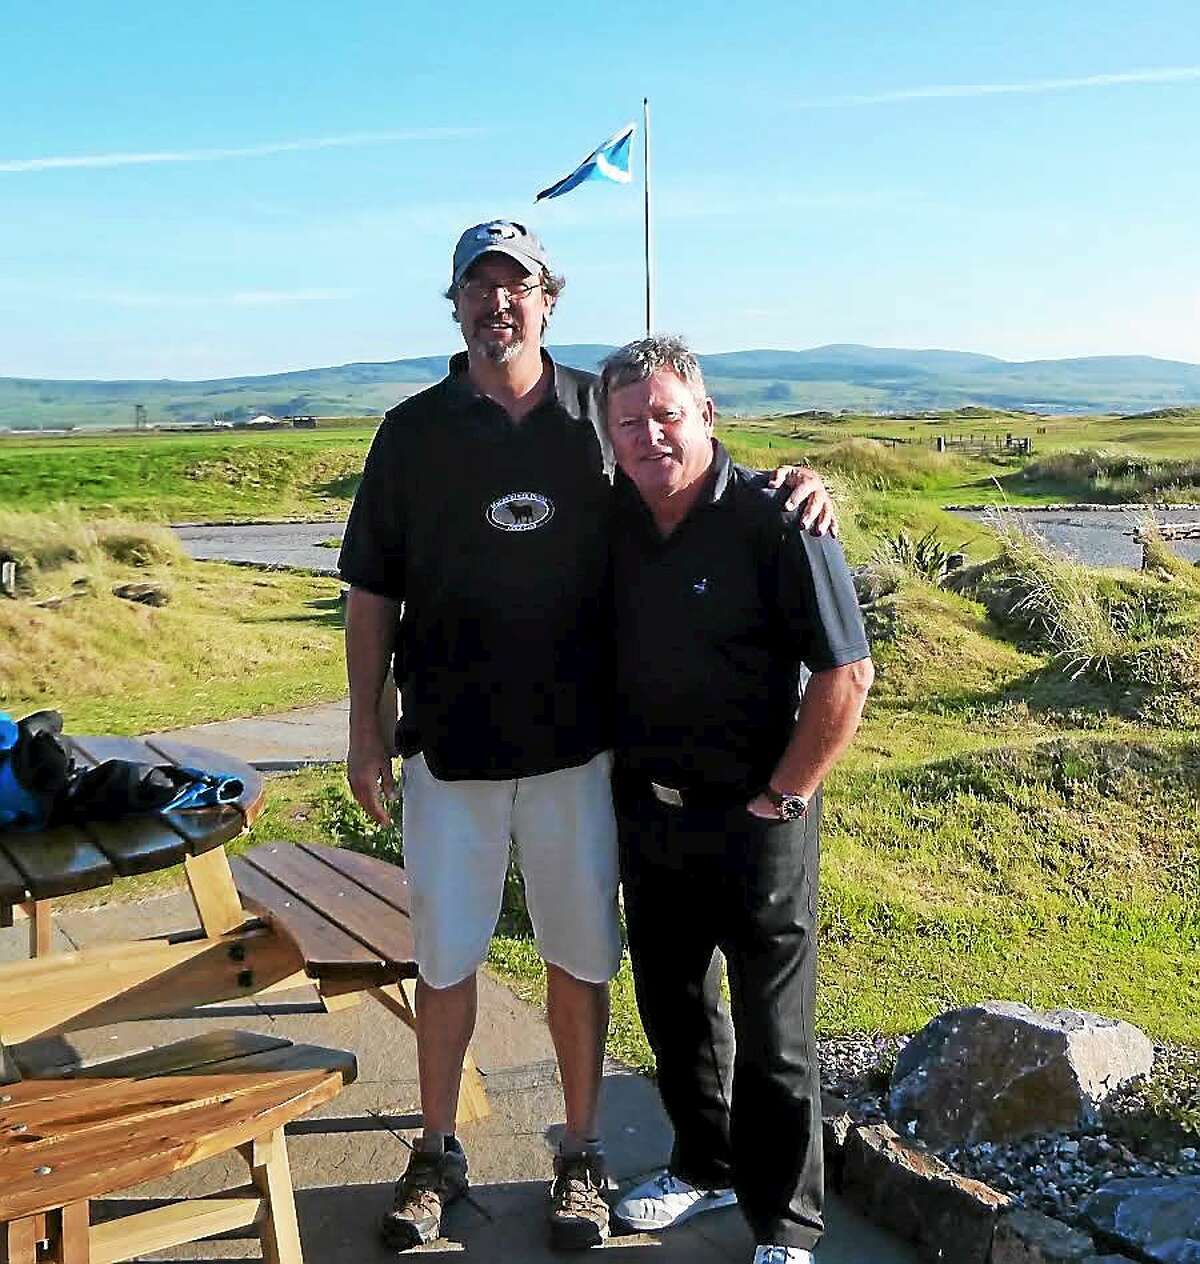 "Shown is author of ""To the Nines,"" Anthony Pioppi, in 2013 at Machrihanish Dunes in Scotland along with Ian Woosnam of Wales, who won the 1991 Masters and was ranked No. 1 in the world for 50 straight weeks in 1991-92, according to Pioppi. ""I forecaddied for his group, which also included David J. Russell, a European Senior Tour player."""